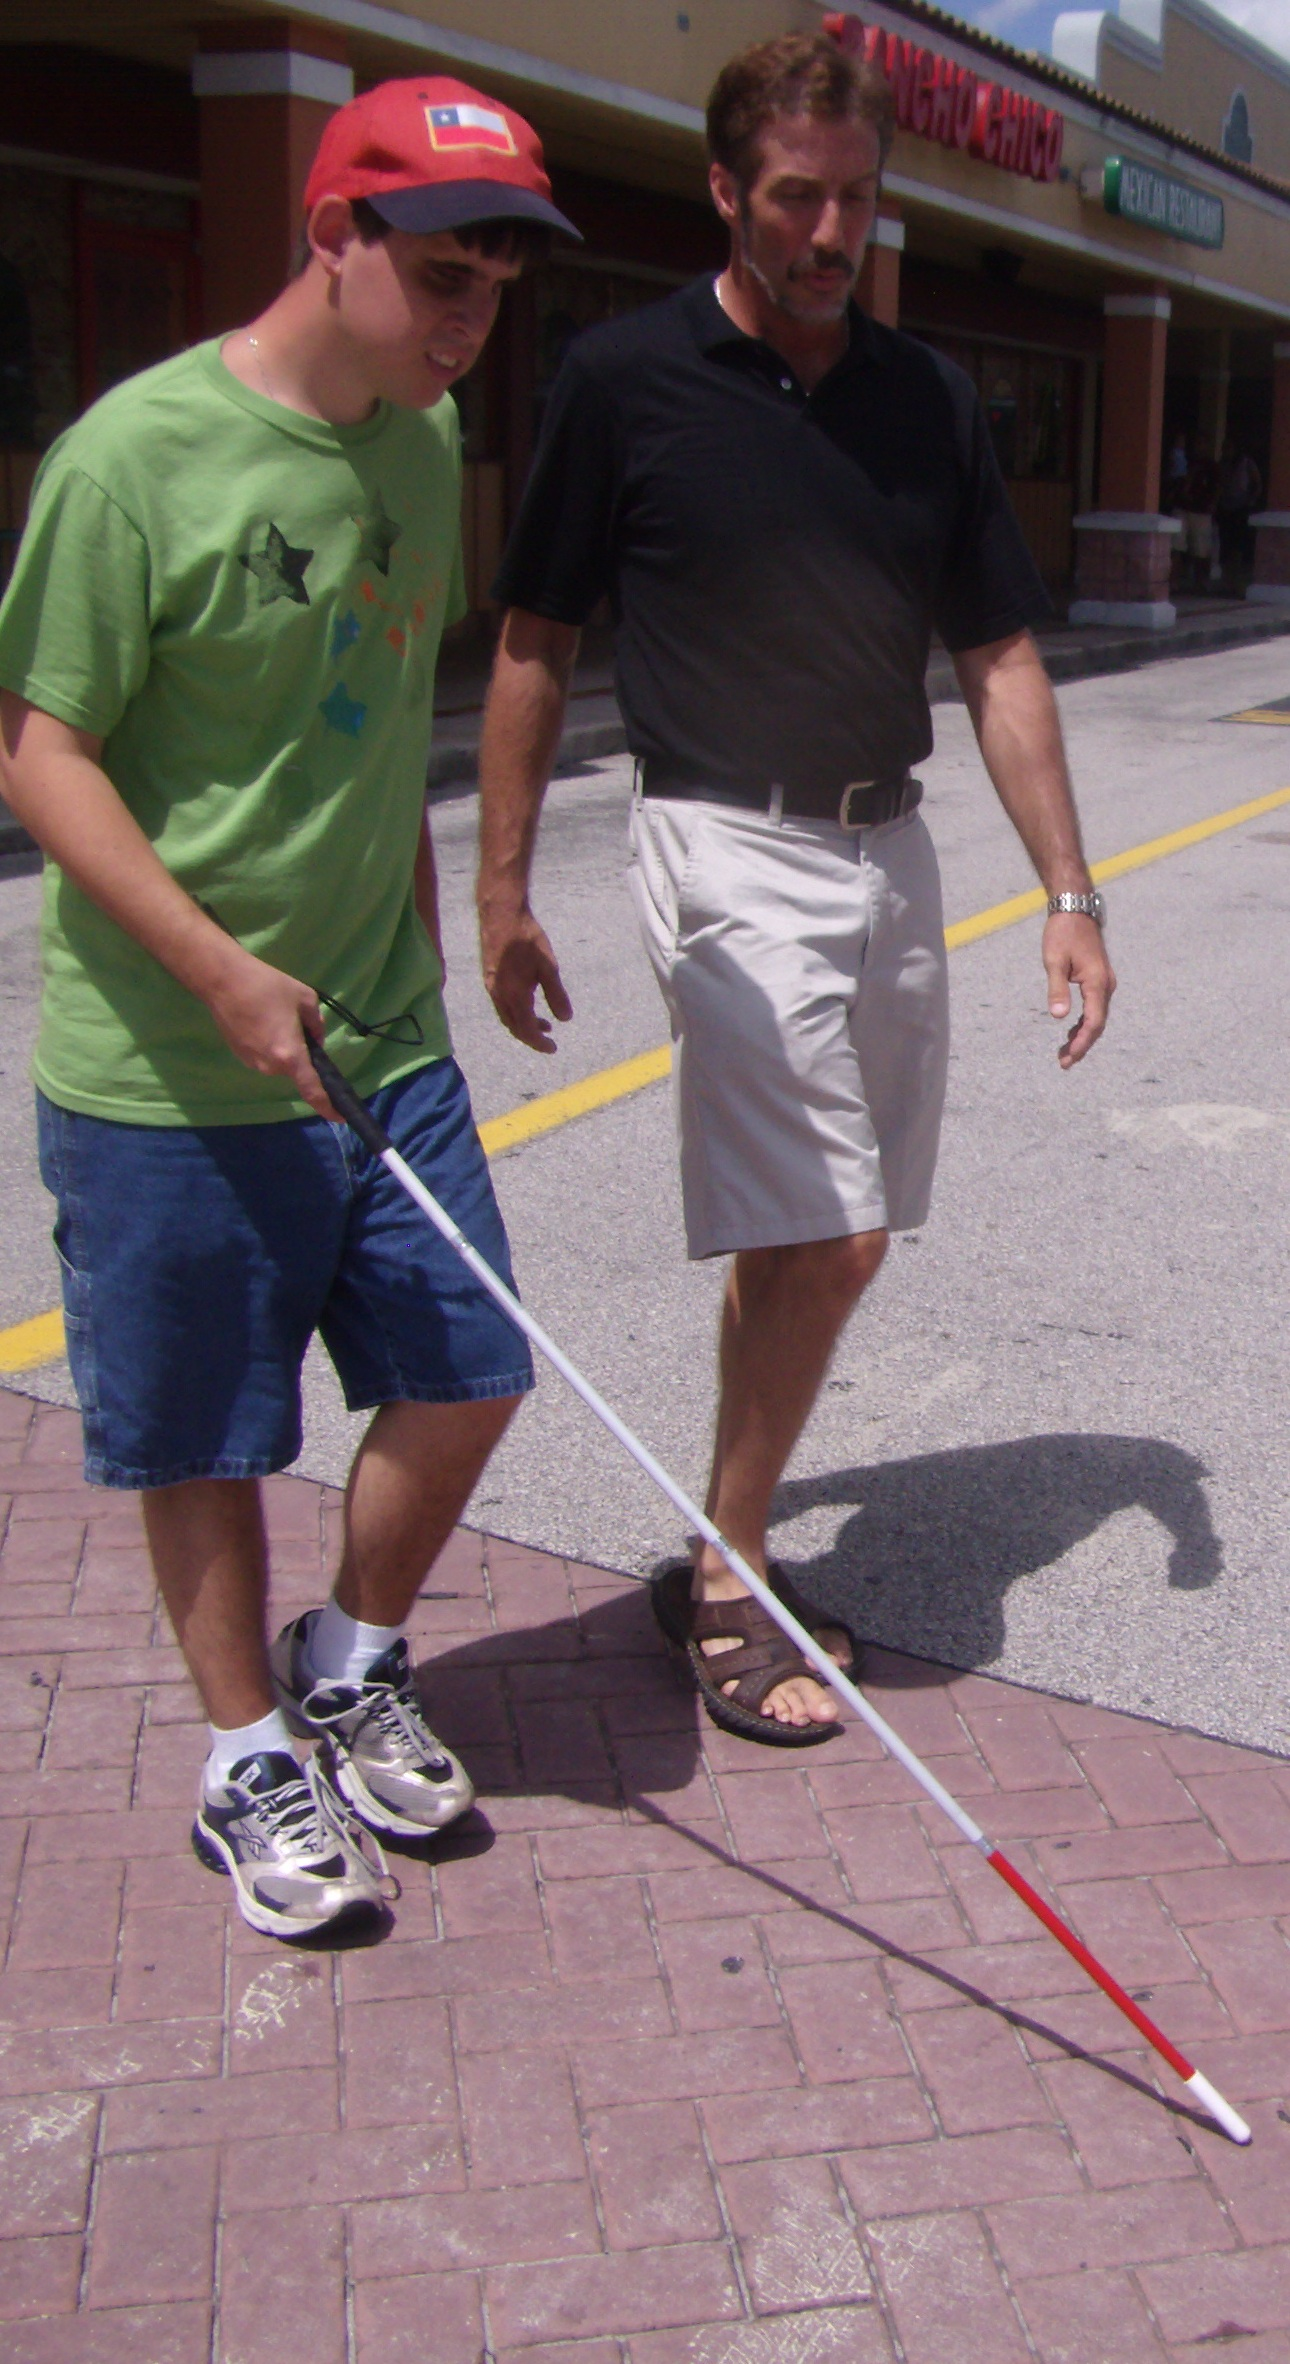 Curt Seeley teaching street crossing techniques to a participant using a white cane